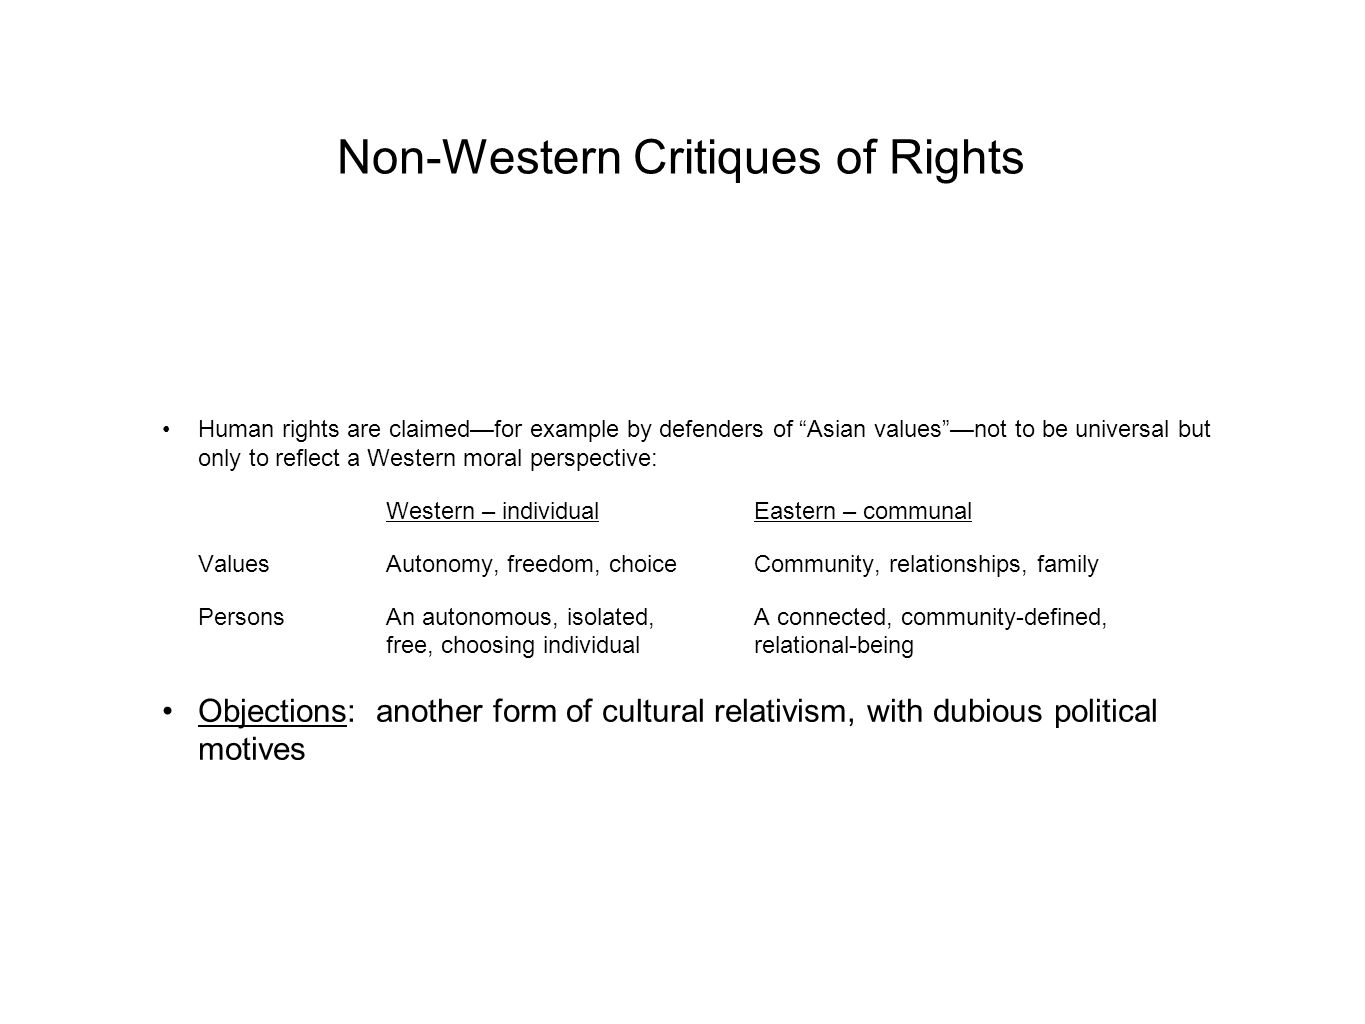 Non-Western Critiques of Rights Human rights are claimed—for example by defenders of Asian values —not to be universal but only to reflect a Western moral perspective: Western – individualEastern – communal ValuesAutonomy, freedom, choiceCommunity, relationships, family PersonsAn autonomous, isolated,A connected, community-defined, free, choosing individualrelational-being Objections: another form of cultural relativism, with dubious political motives